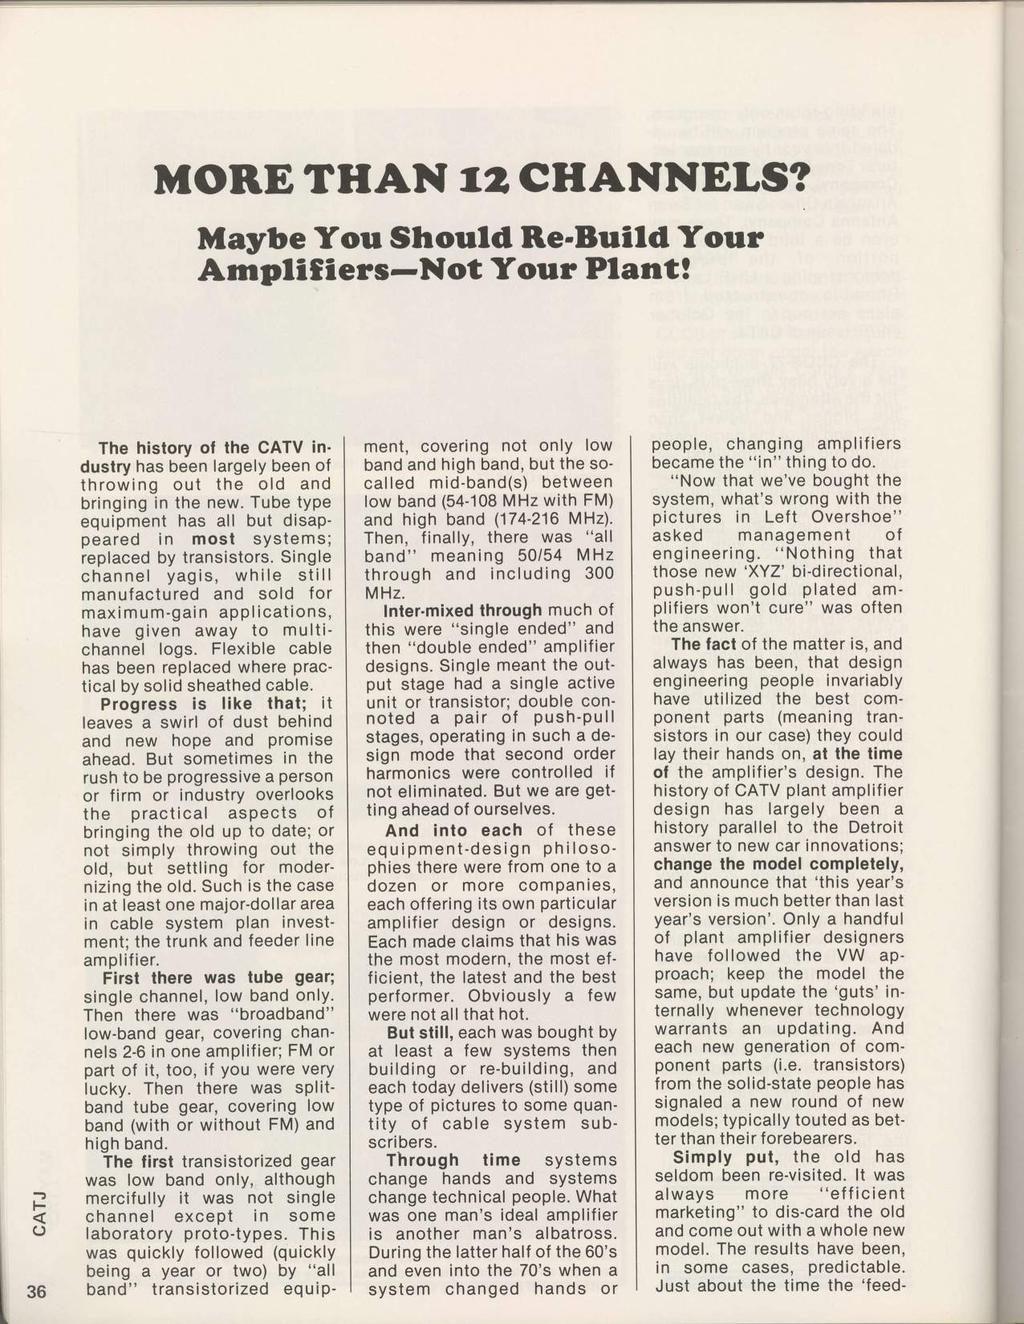 MORETHAN ';2CHANNELS? Maybe You Should Re'Build Your Amplifiers-Not Your Plant! F C) 1 3 6 t The history of the CATV industry has been largely been of throwing out the old and bringing in the new.